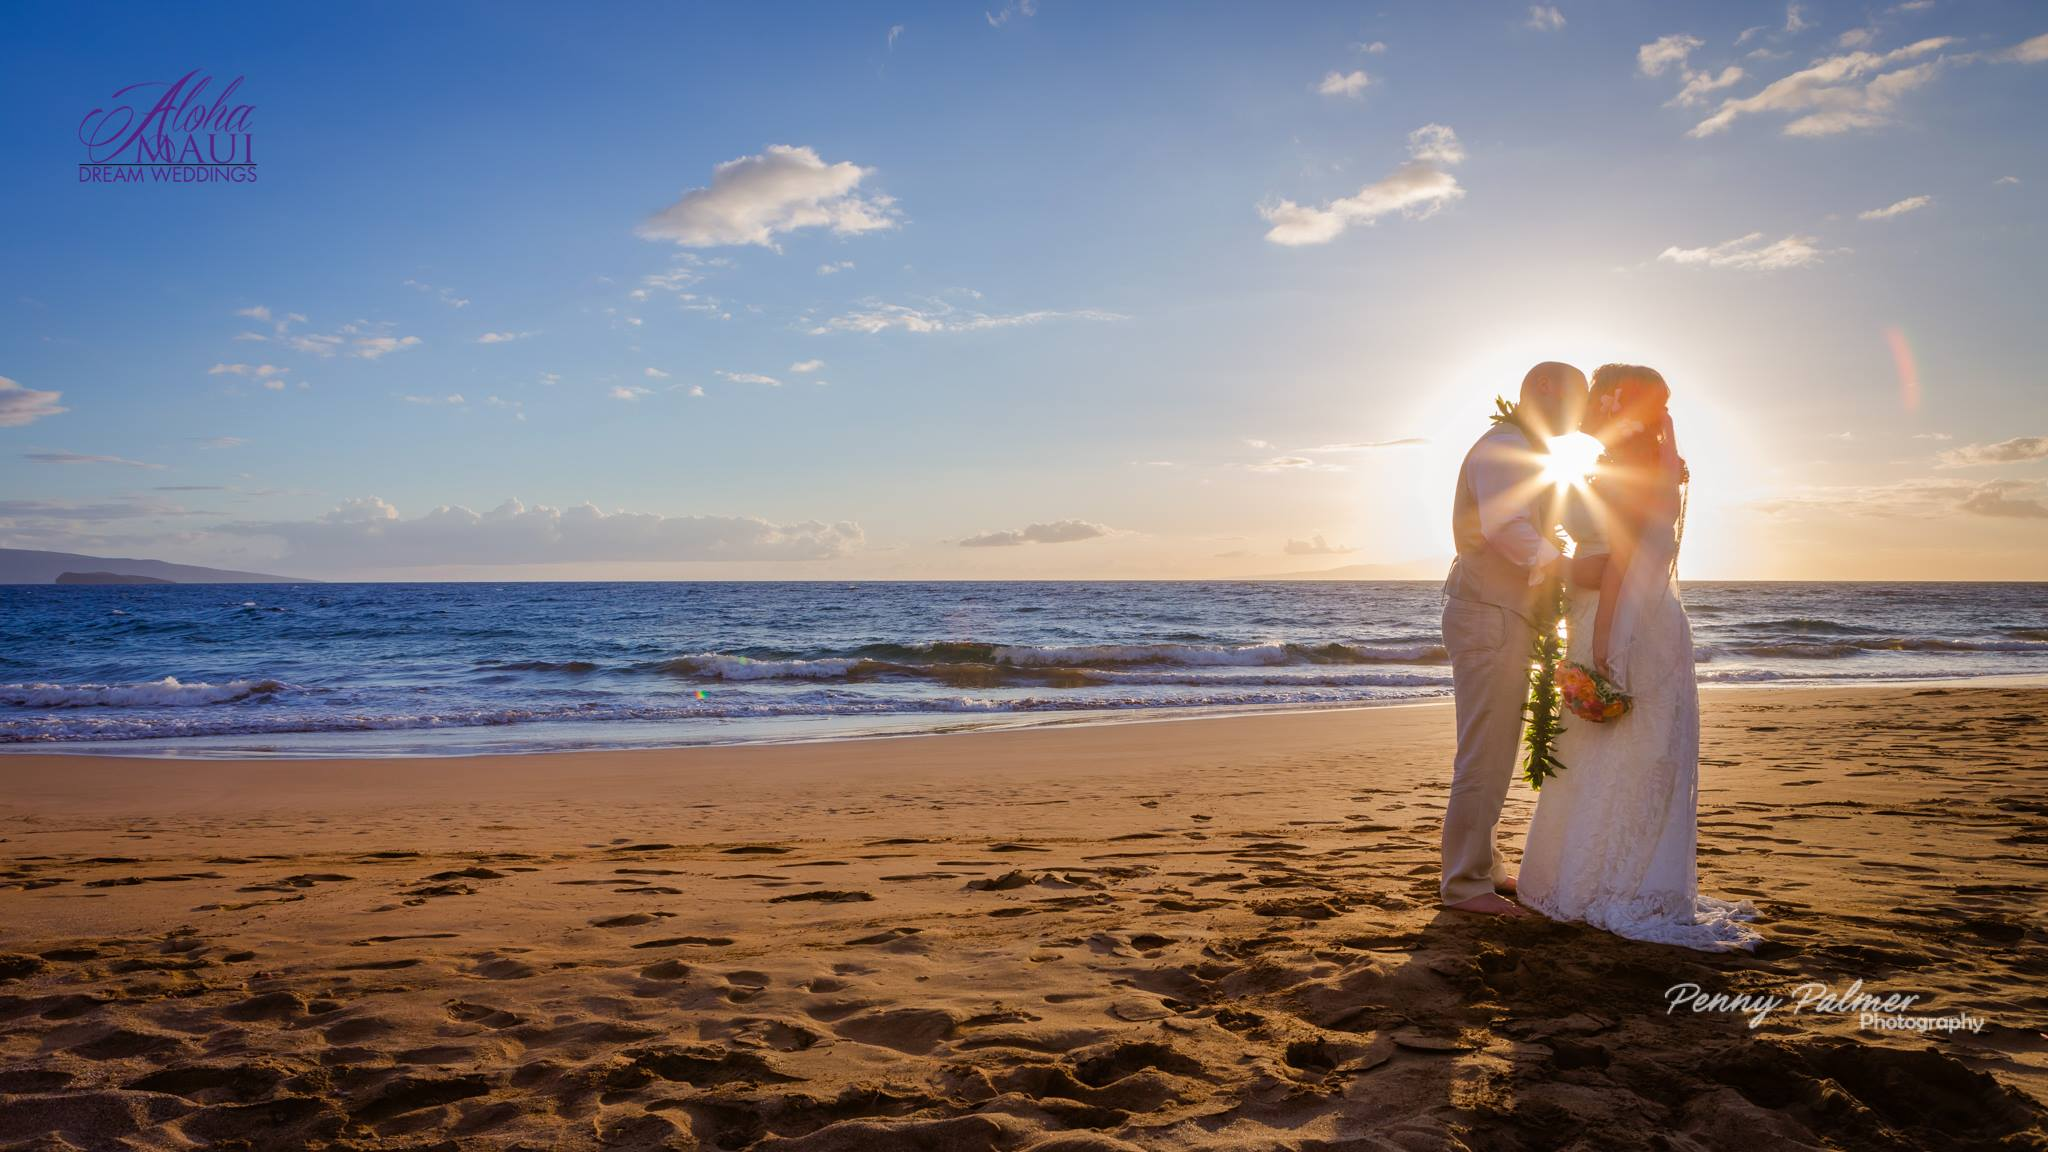 beach weddings in Maui